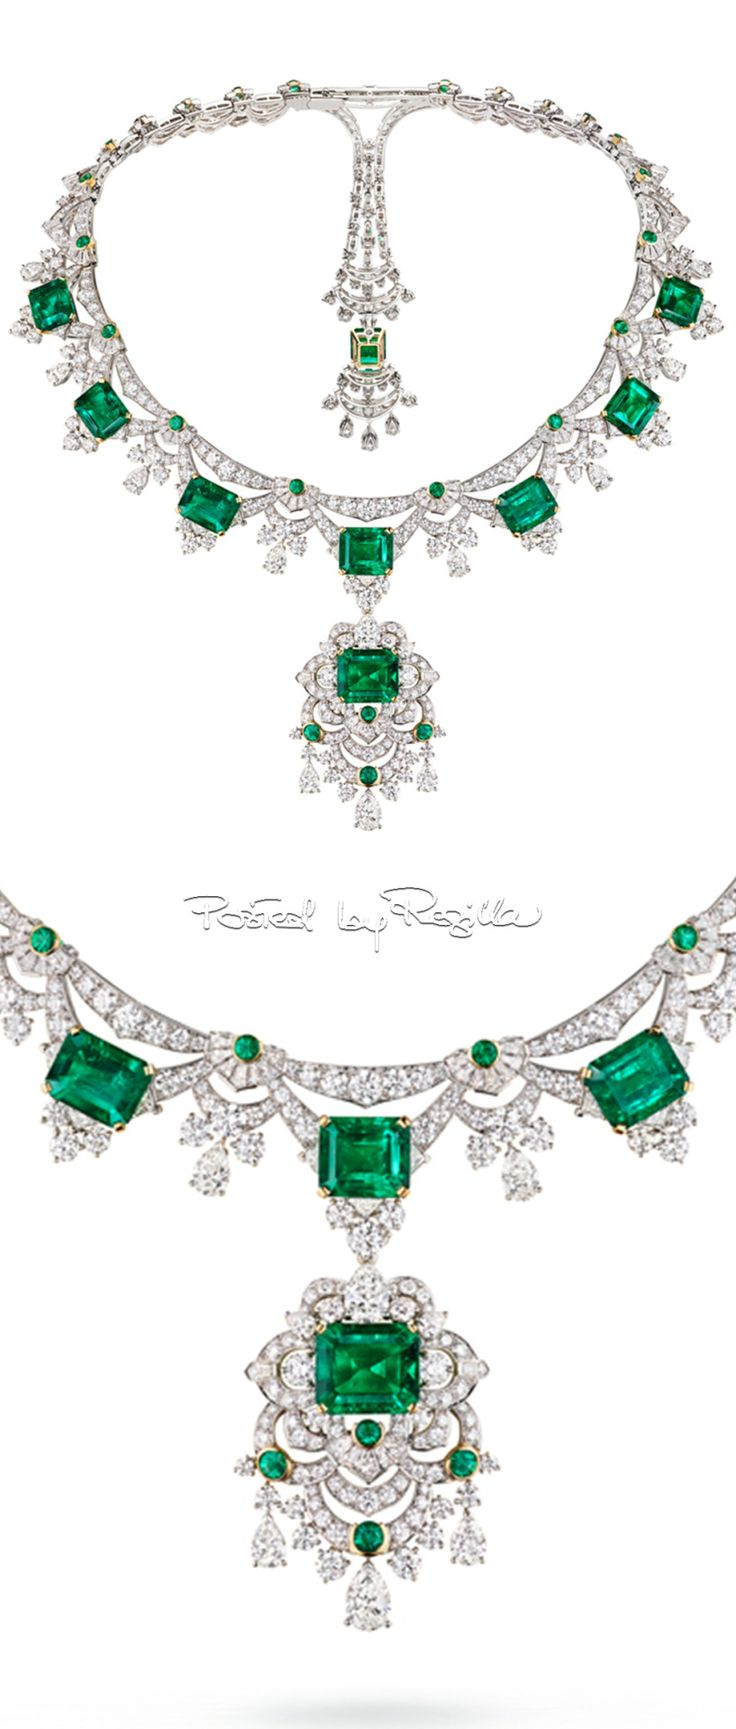 Spectacular emerald and diamond necklace from the Emeraude en Majesté collection by @vancleefarpels